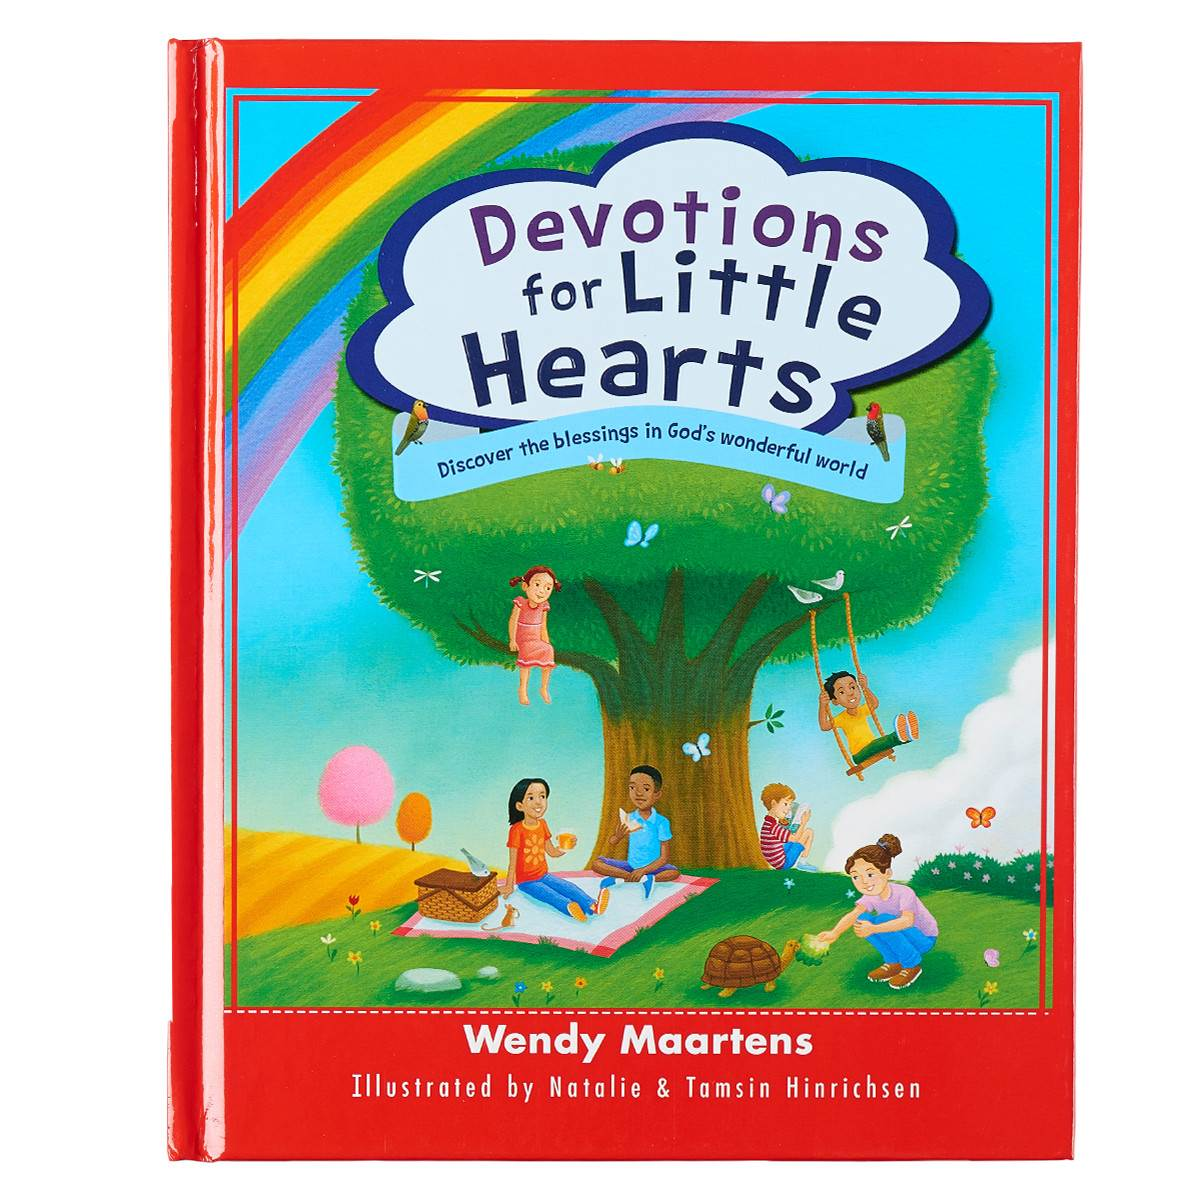 Devotions for Little Hearts KDS514, devotion book, childrens book, prayer book, childs gift, prayer gift